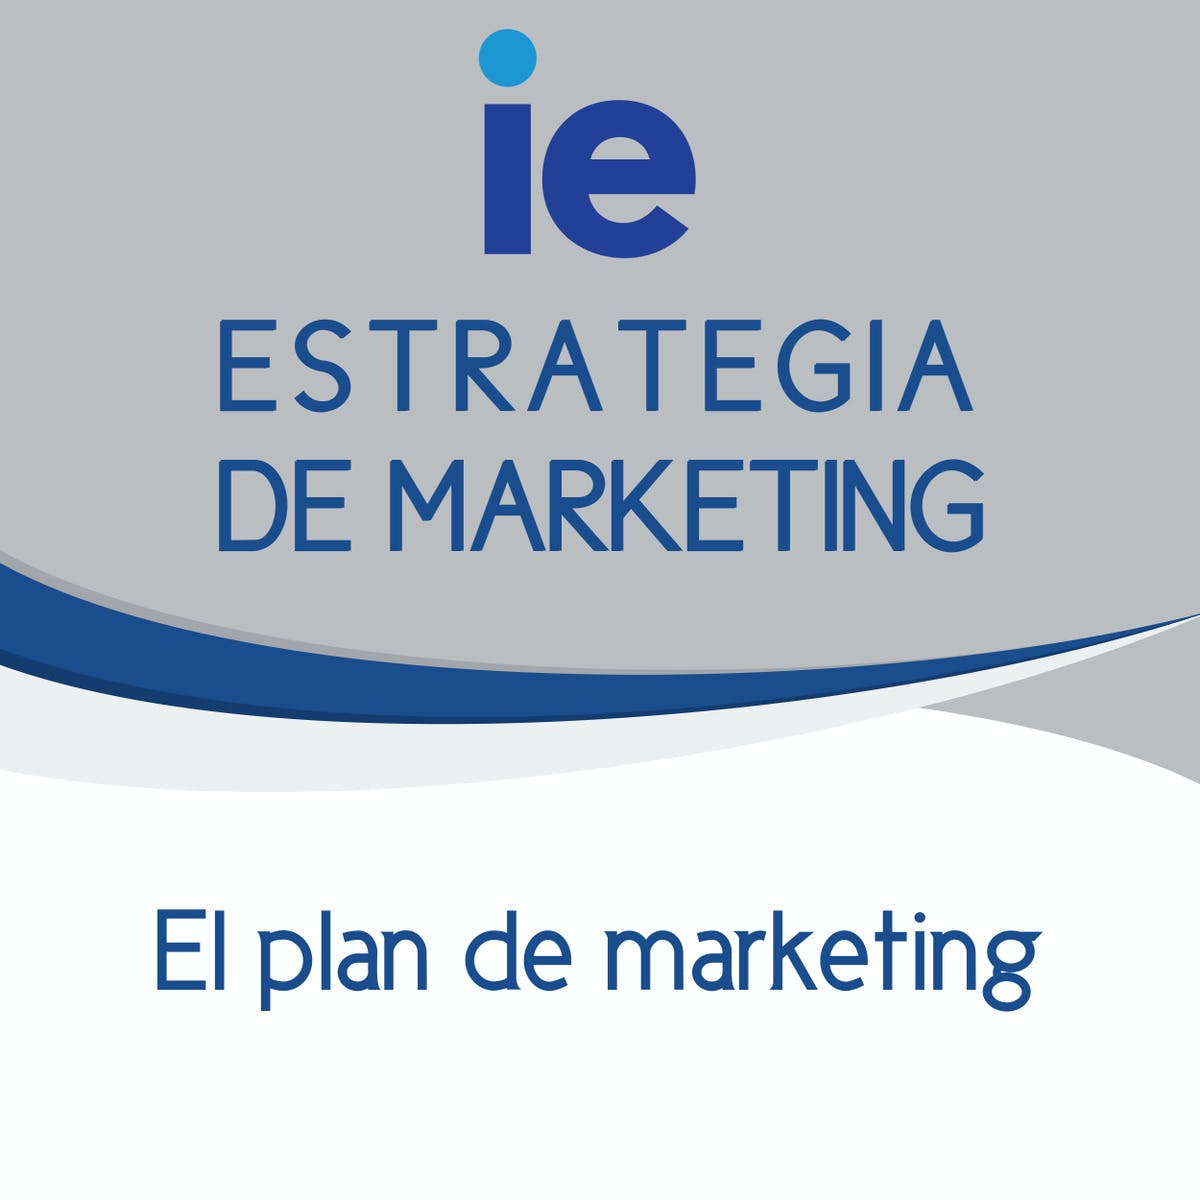 El plan de marketing